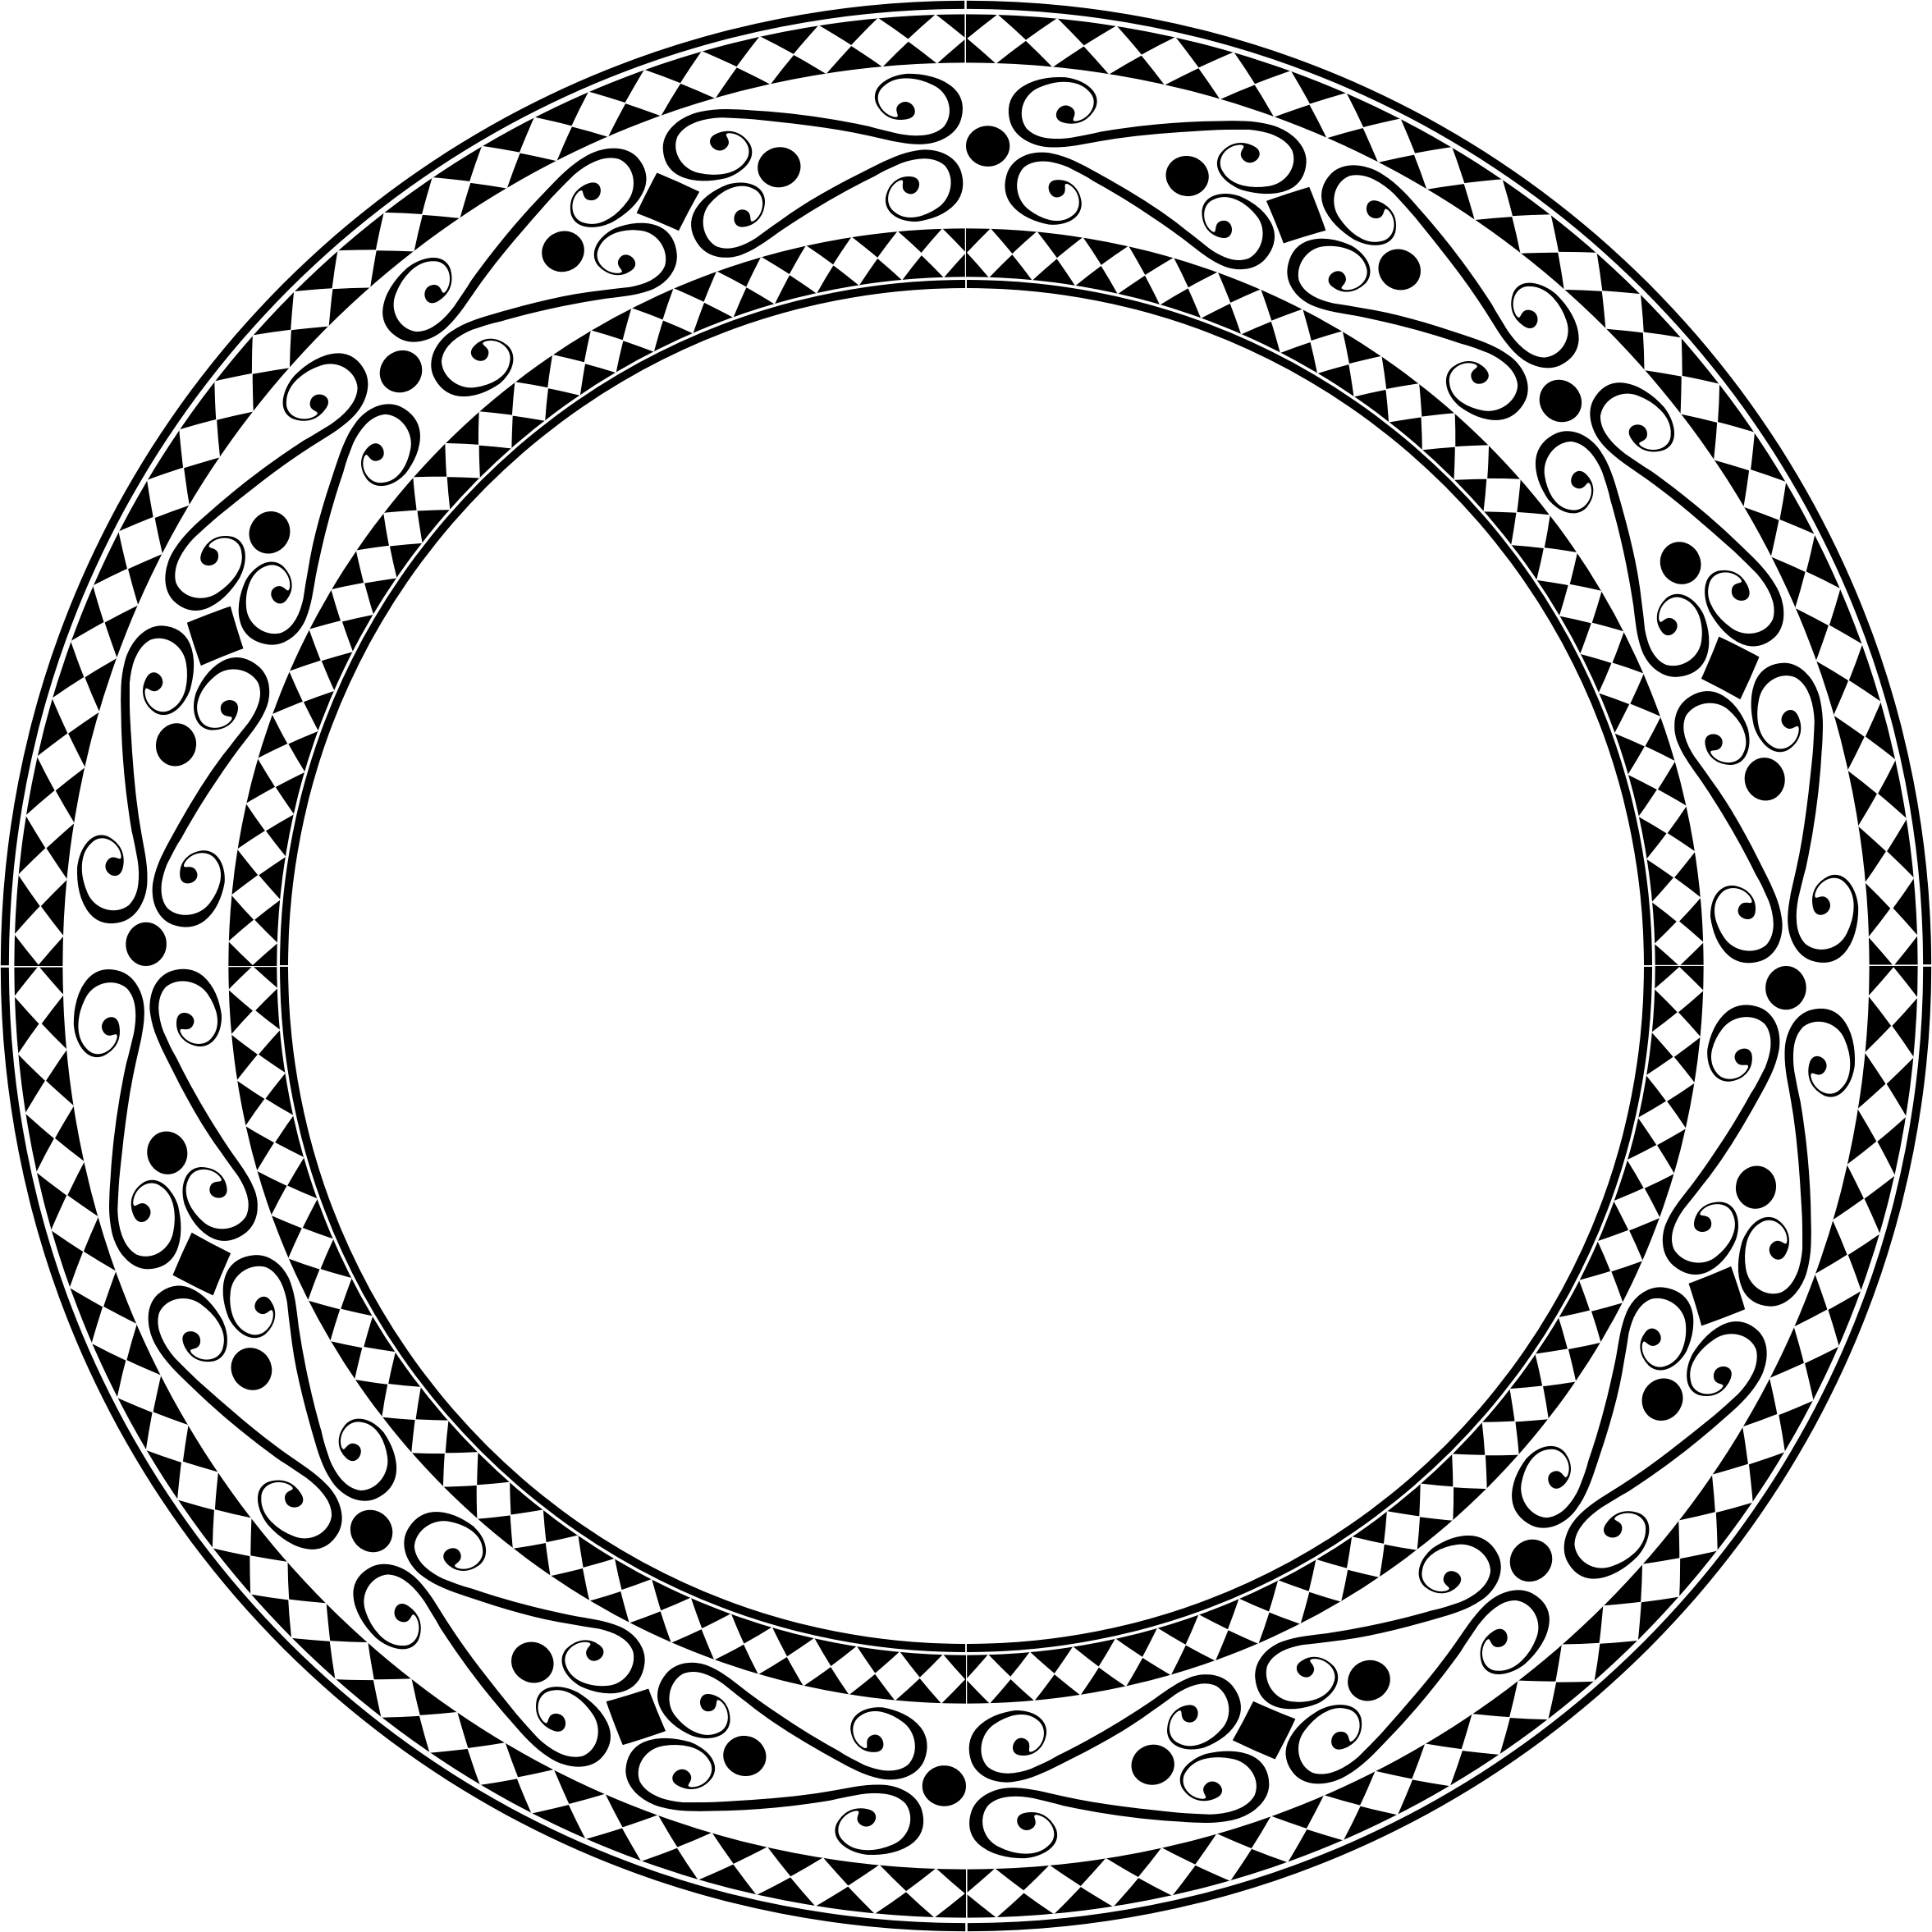 Round frame png. Clipart decorative ornamental large